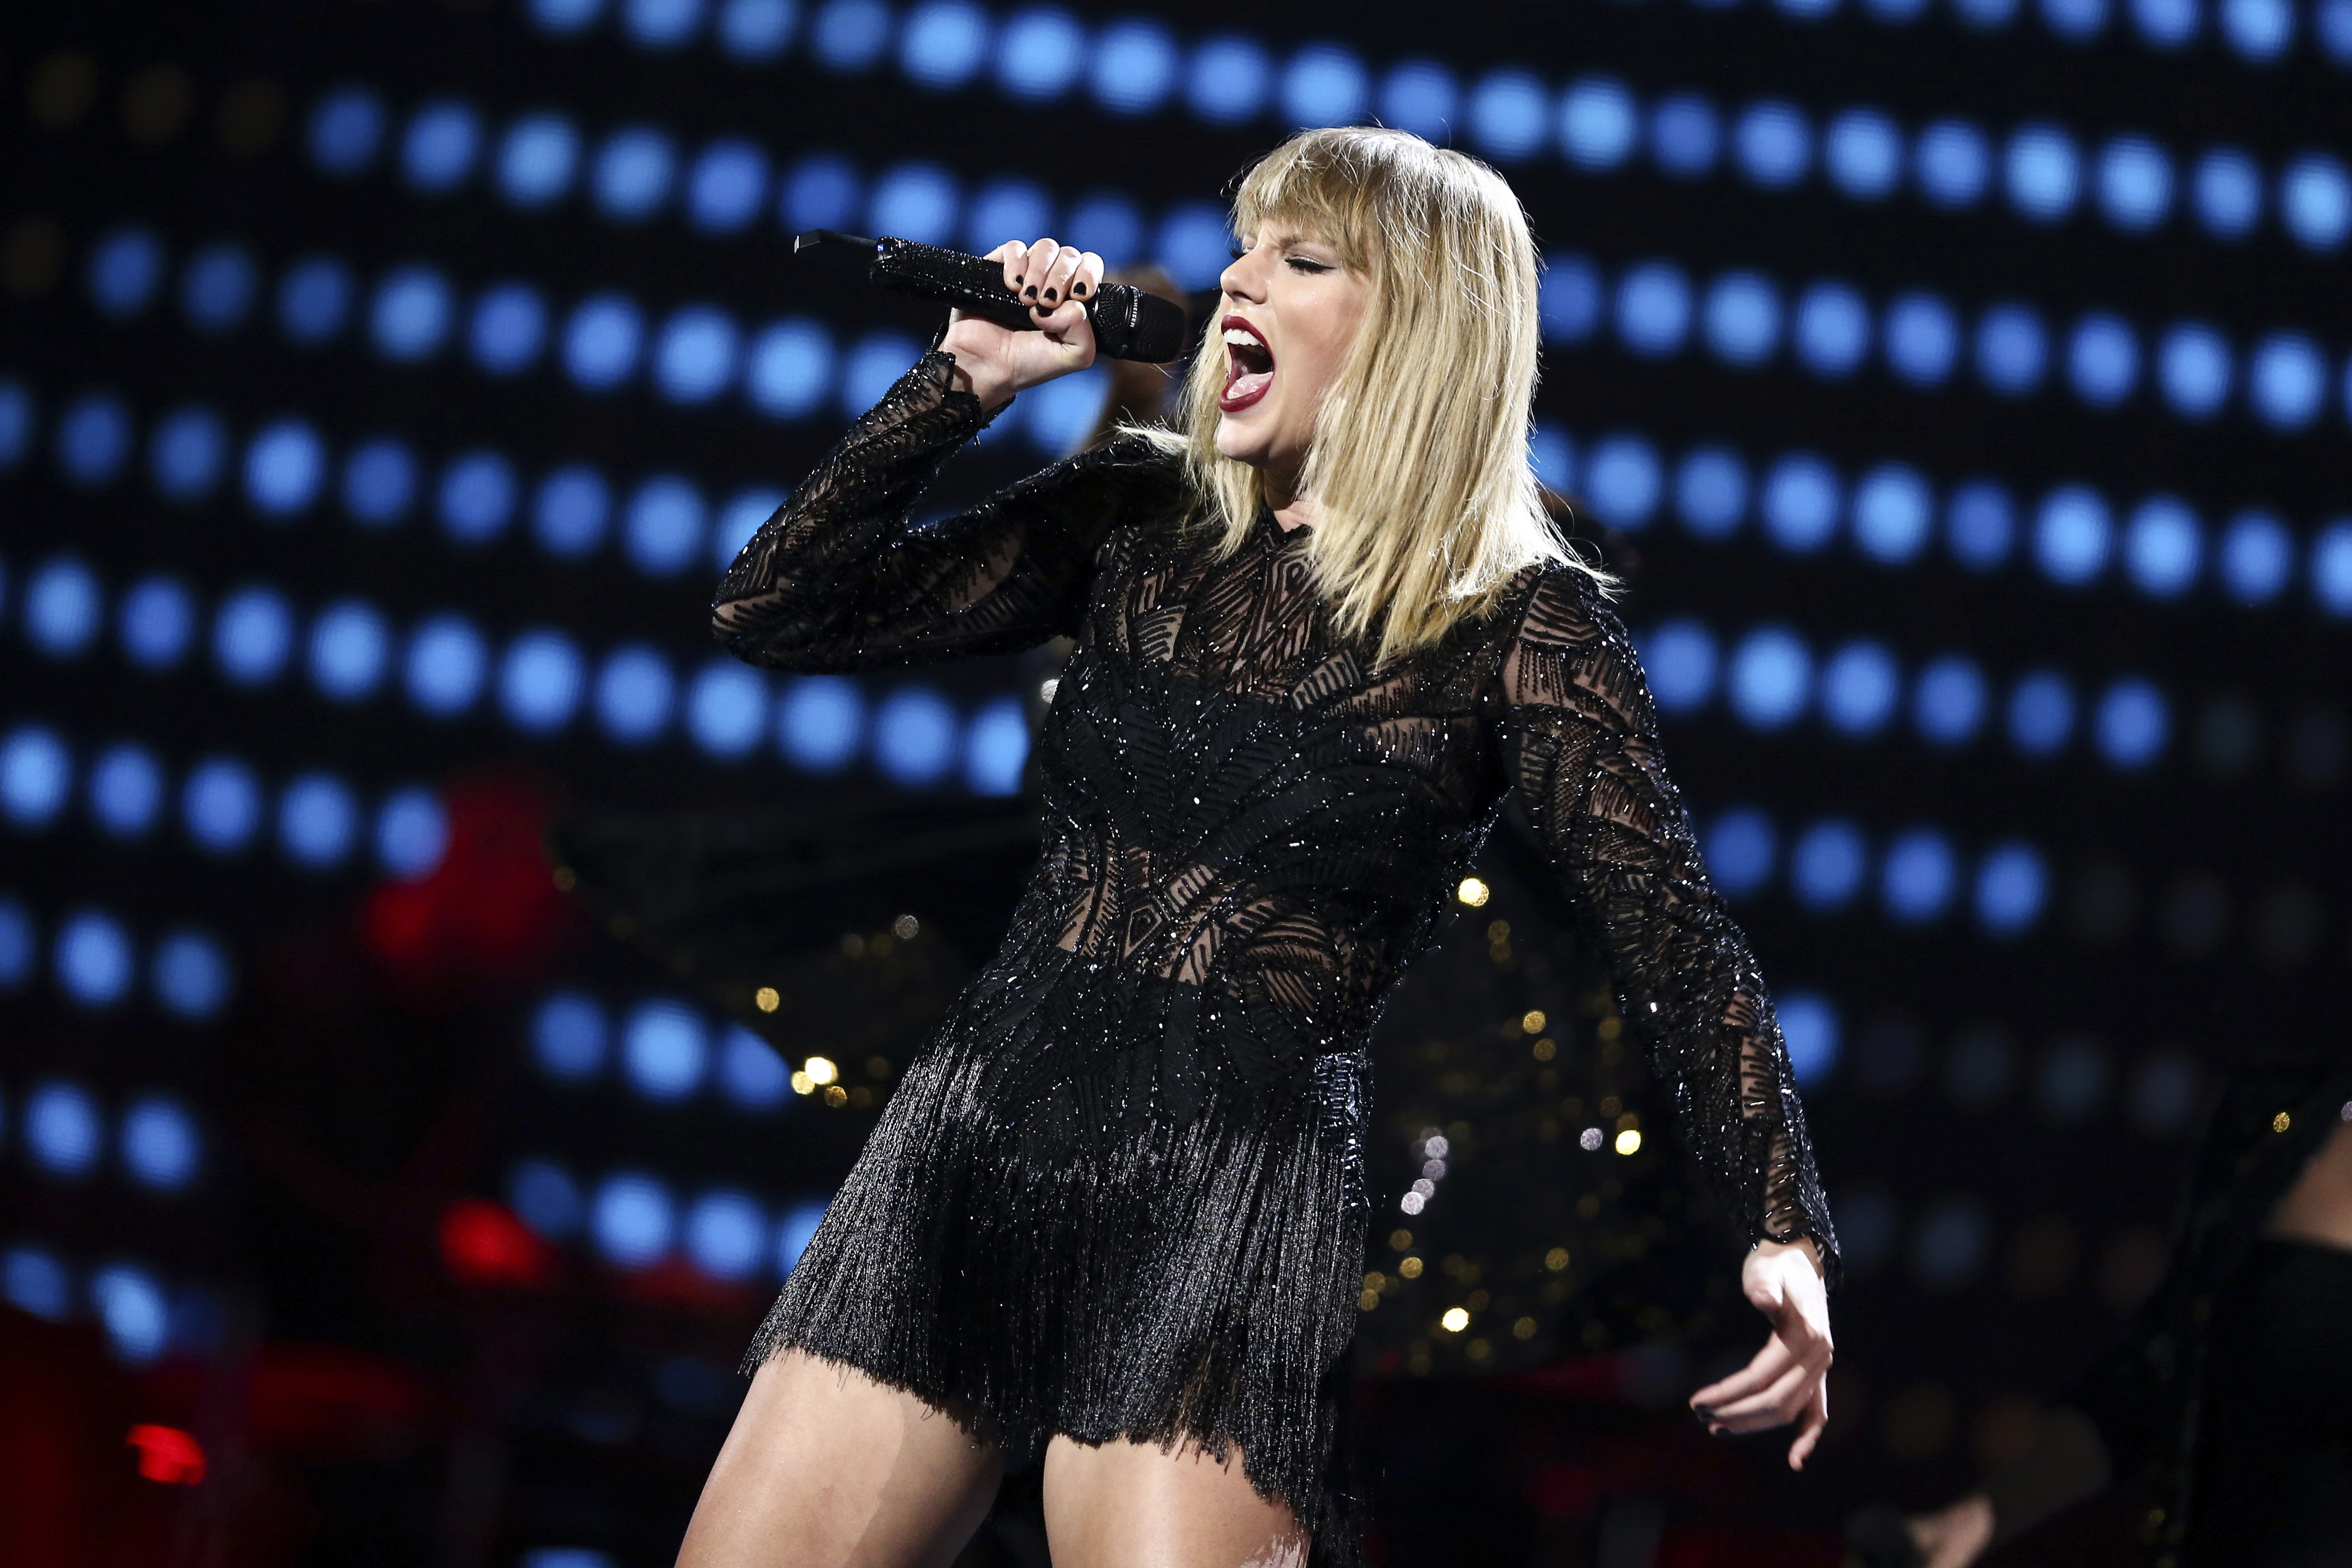 Taylor Swift performs on Feb. 4, 2017 in Houston, Texas.